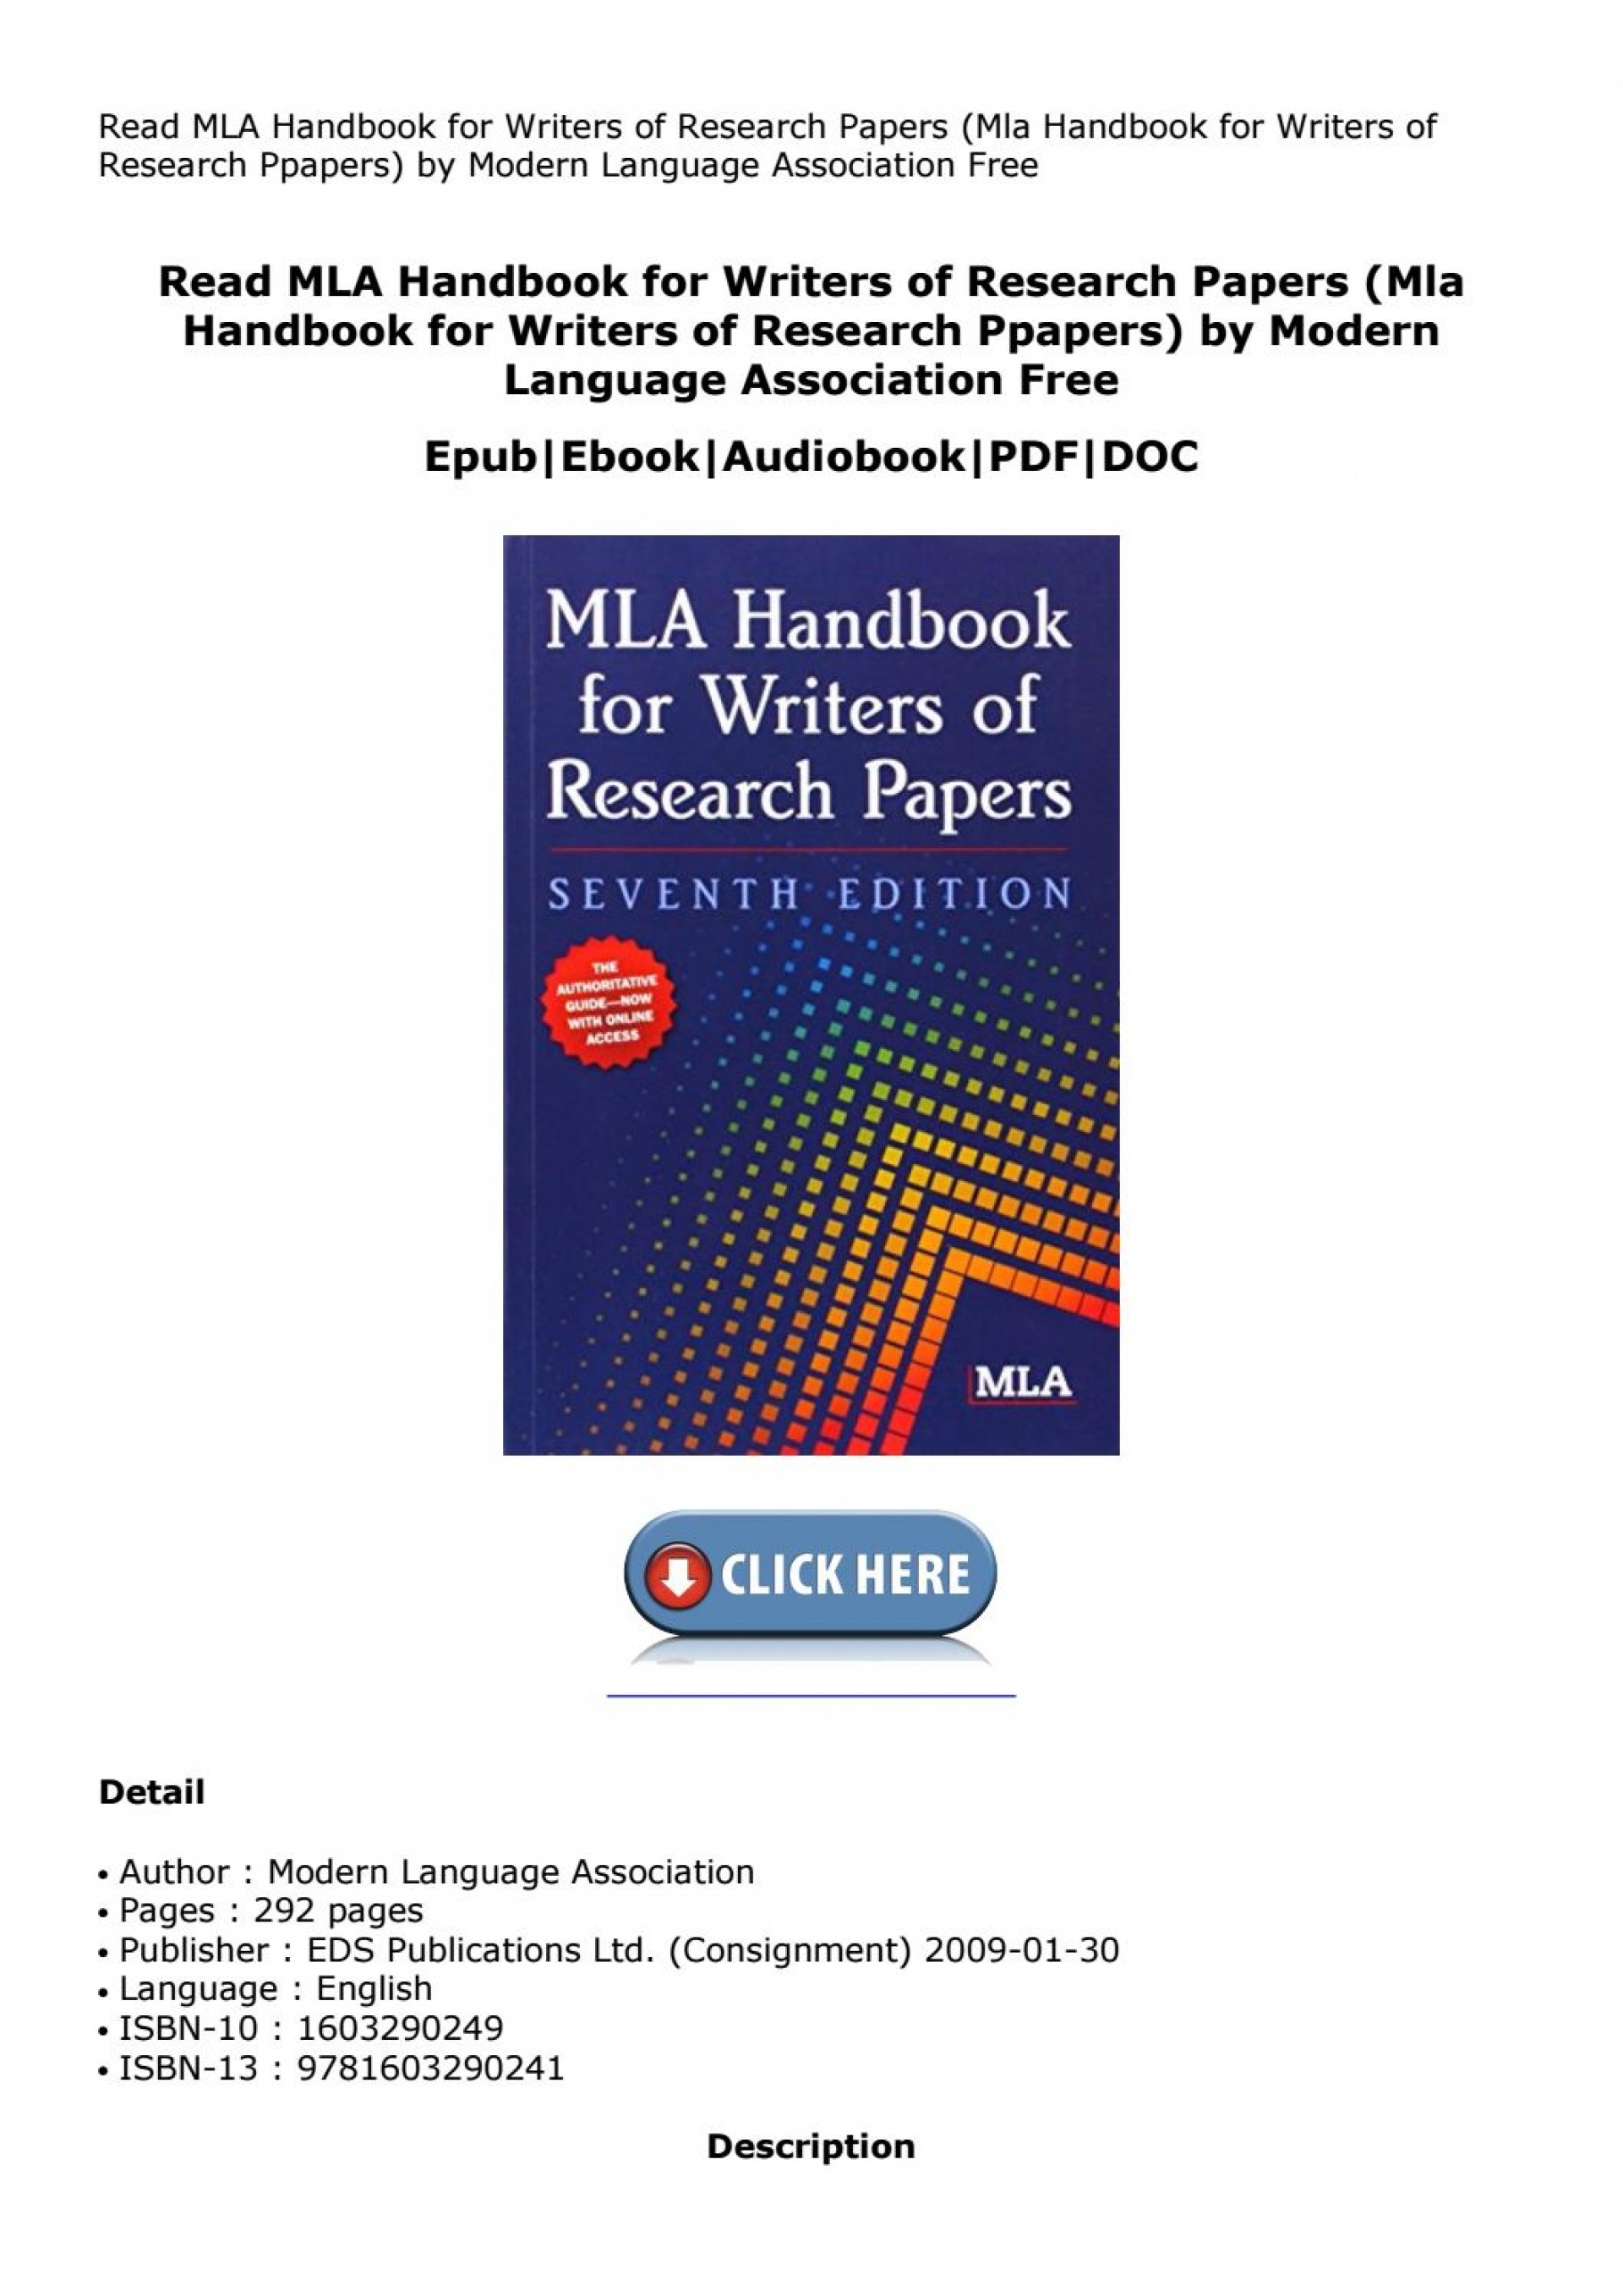 008 Research Paper Page 1 Mla Handbook For Writing Frightening Papers Writers Of 7th Edition Pdf Free Download 2009 Summary 1920